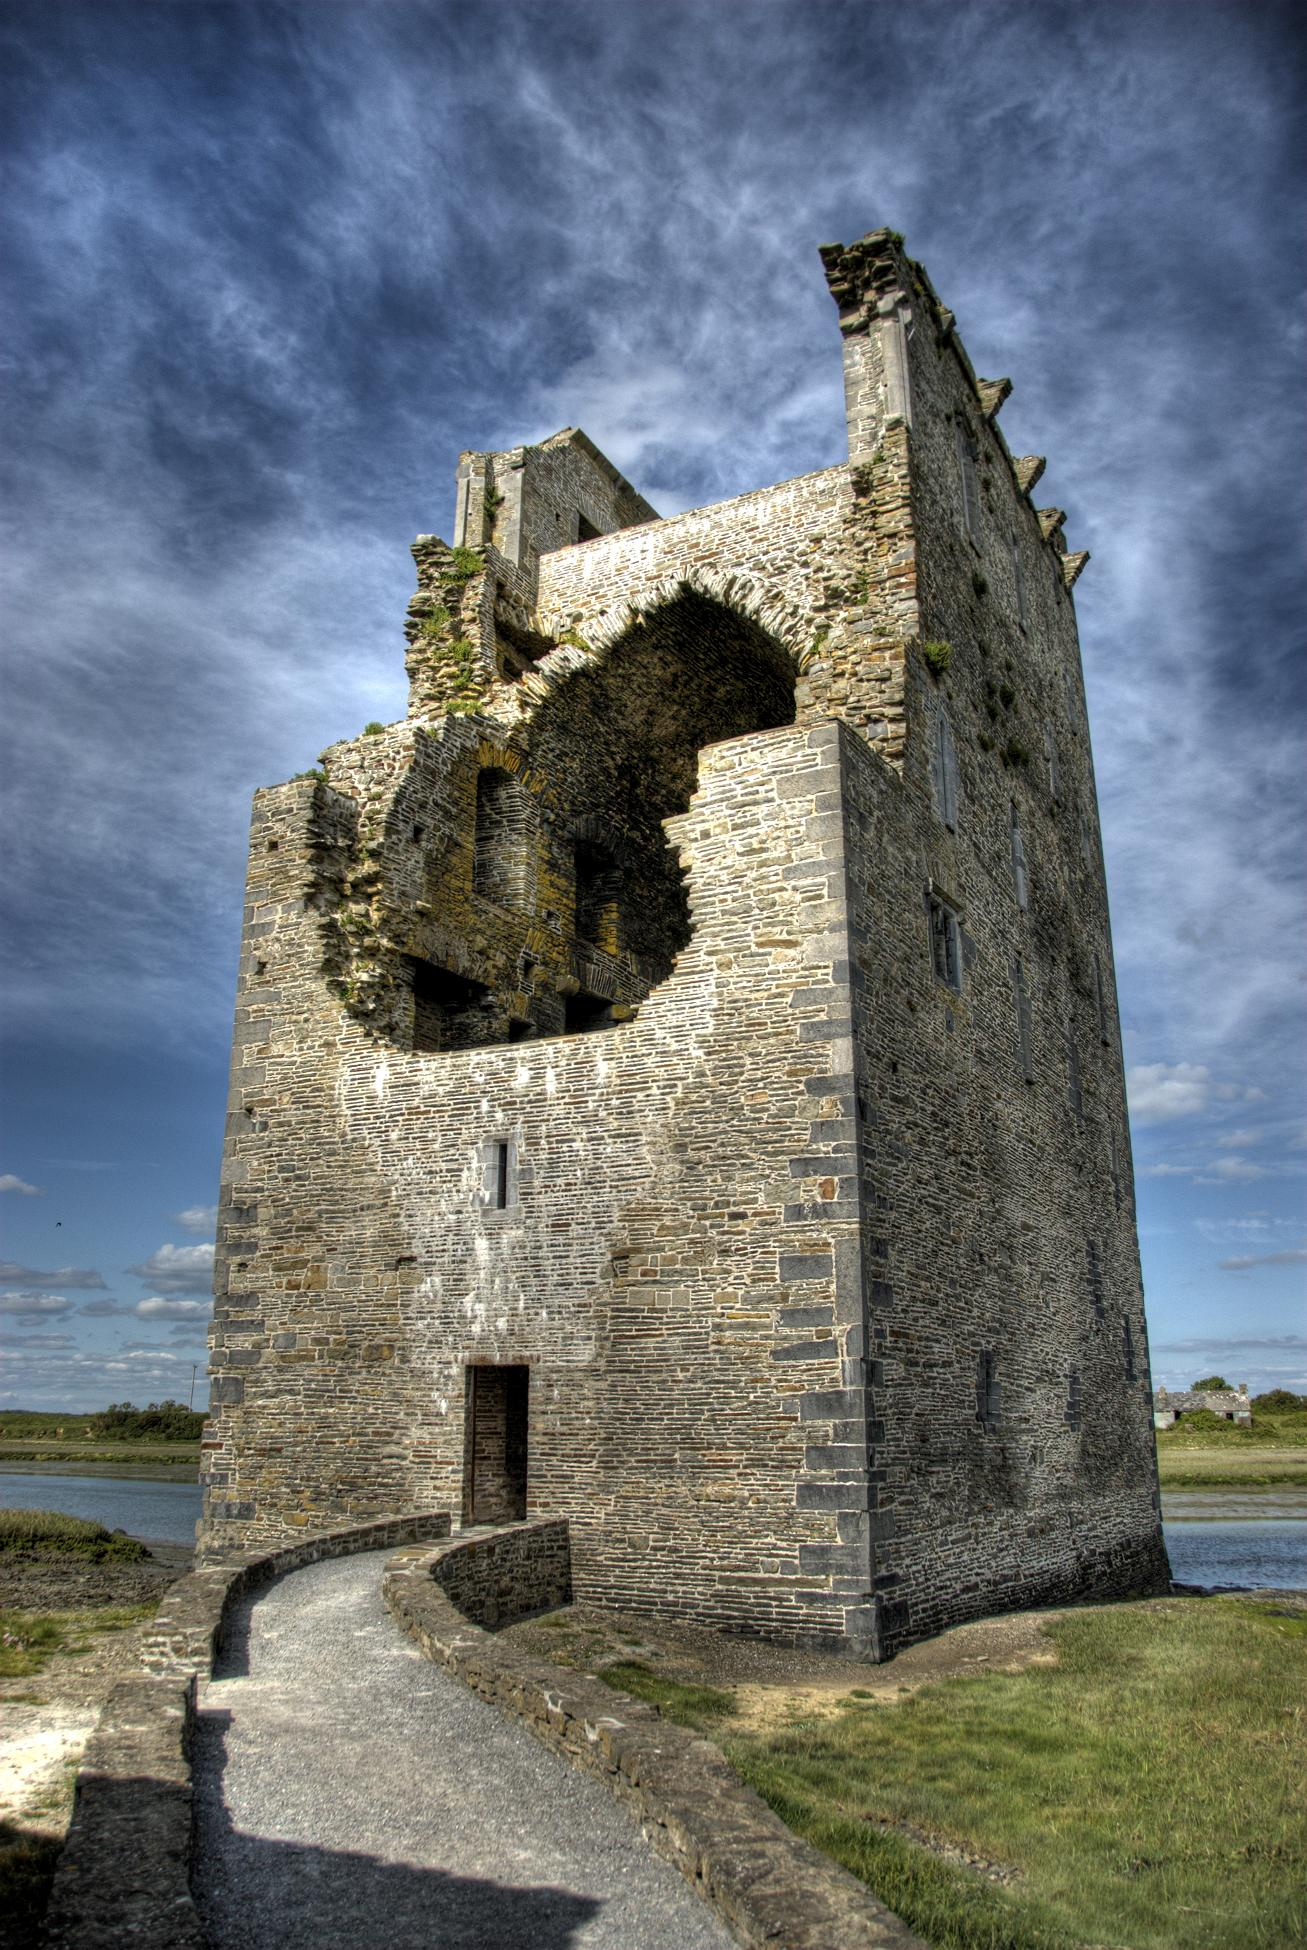 Carrigafoyle Castle, Co. Kerry – photos and facts